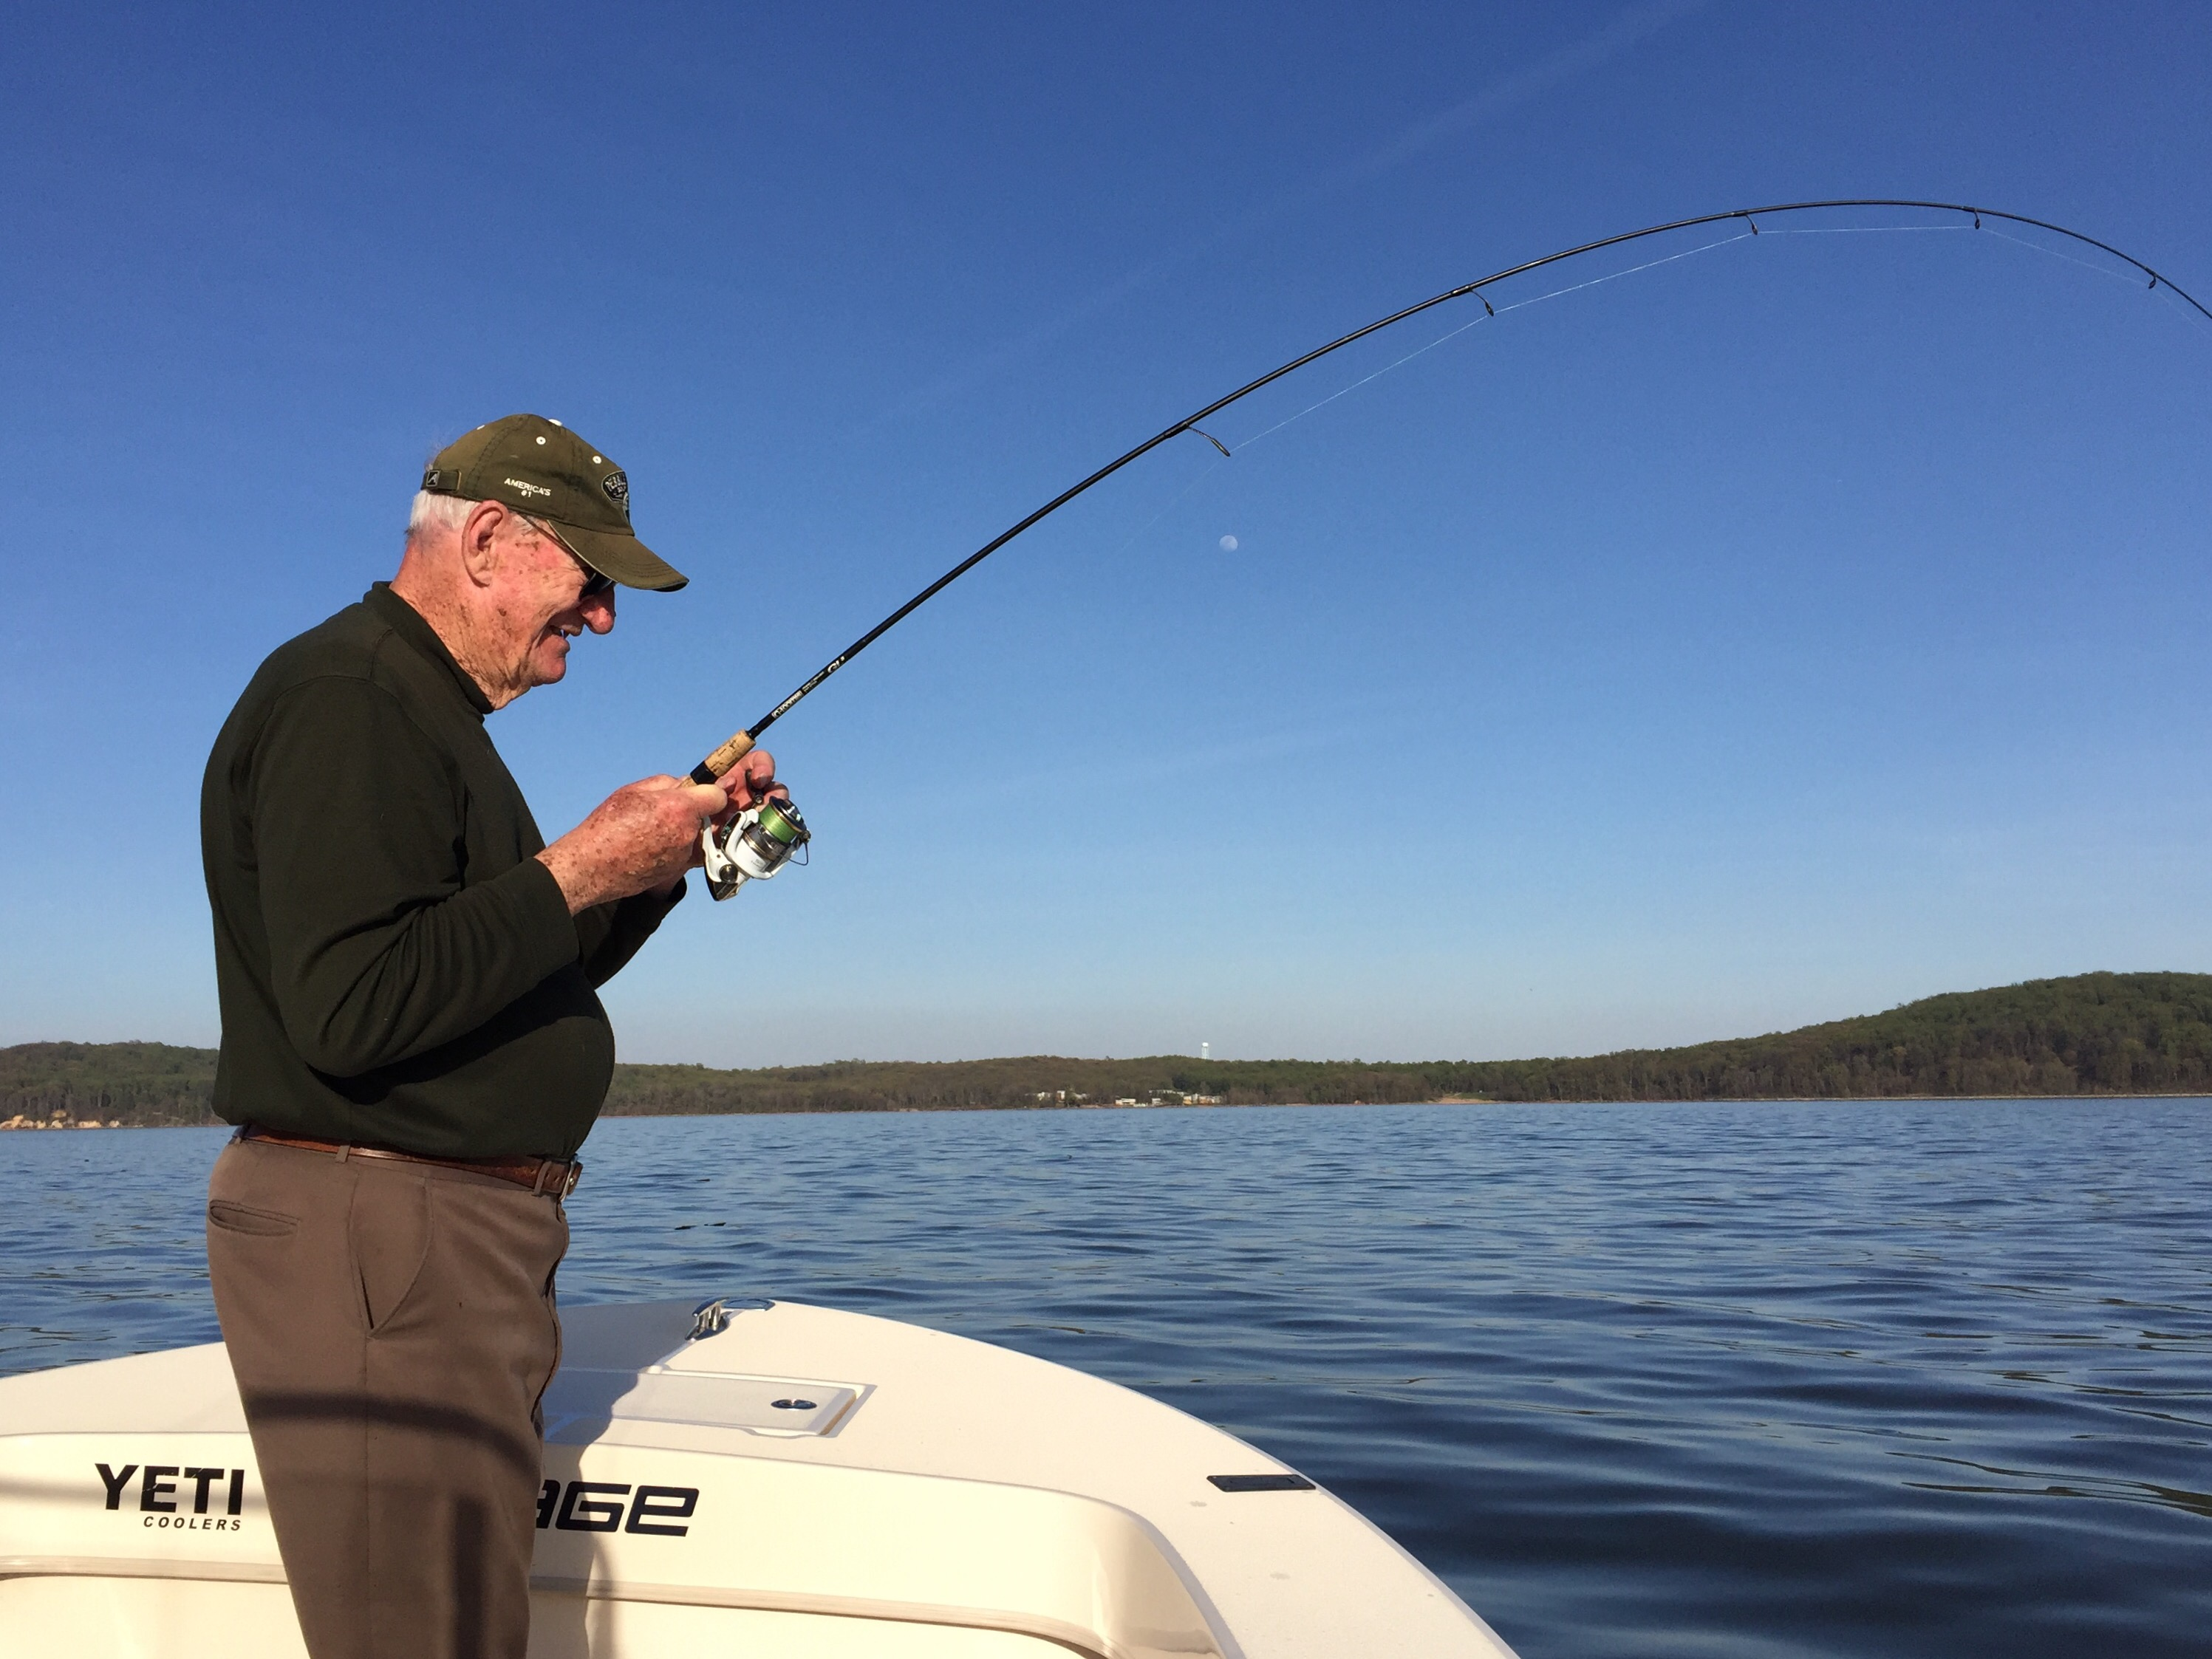 Happy father s day josenhans fly fishing blog for Fly fishing blogs